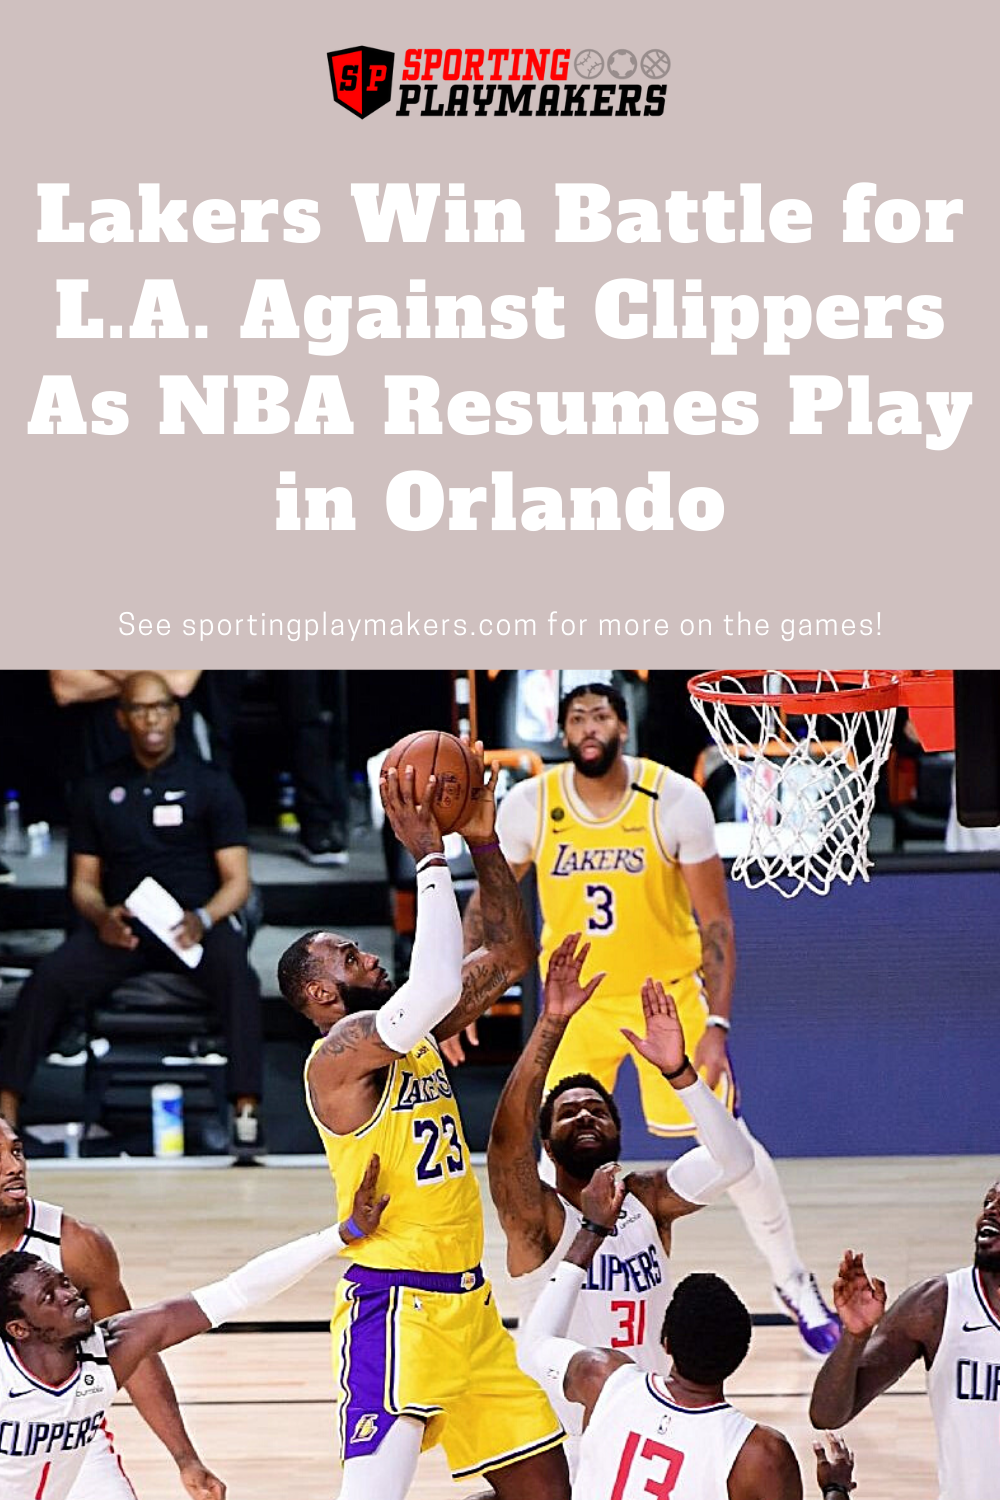 The National Basketball Association Resumed Play Last Night As Teams Vie For The Final Spots In The 2020 Play In 2020 Lakers Win Lakers National Basketball Association